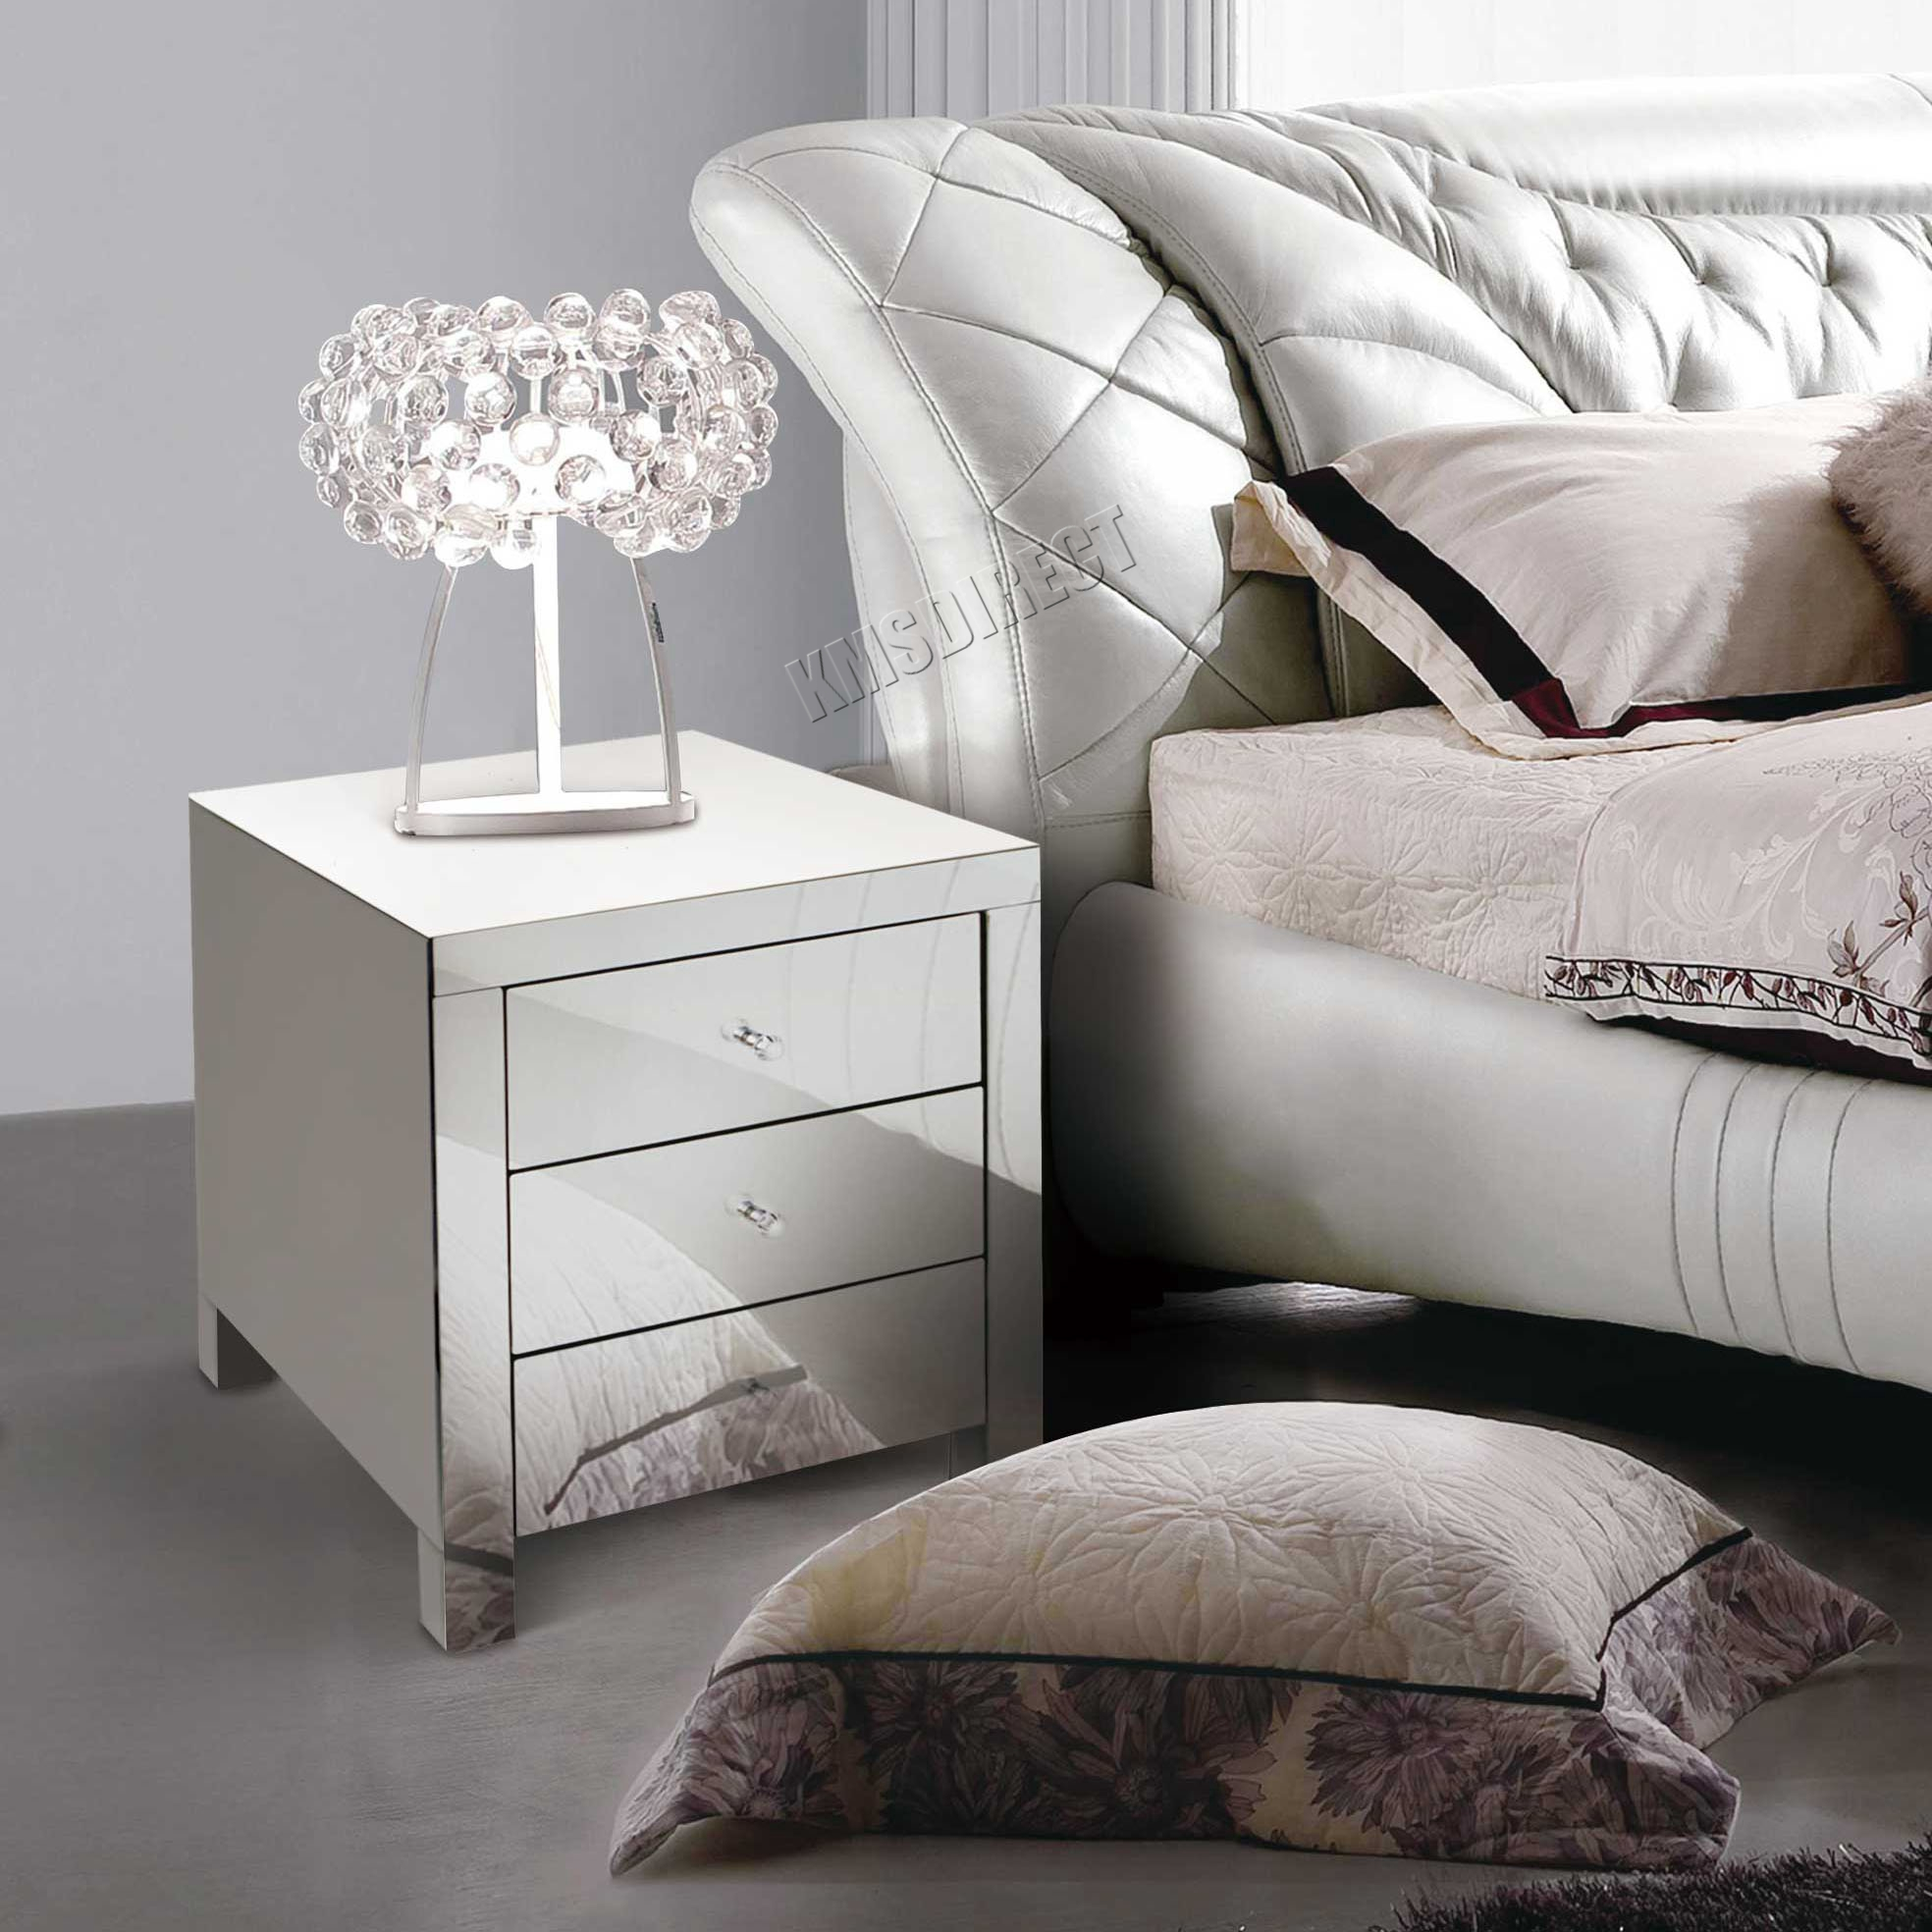 Mirrored Furniture For Bedroom Foxhunter Mirrored Furniture Glass Bedside Cabinet Table With